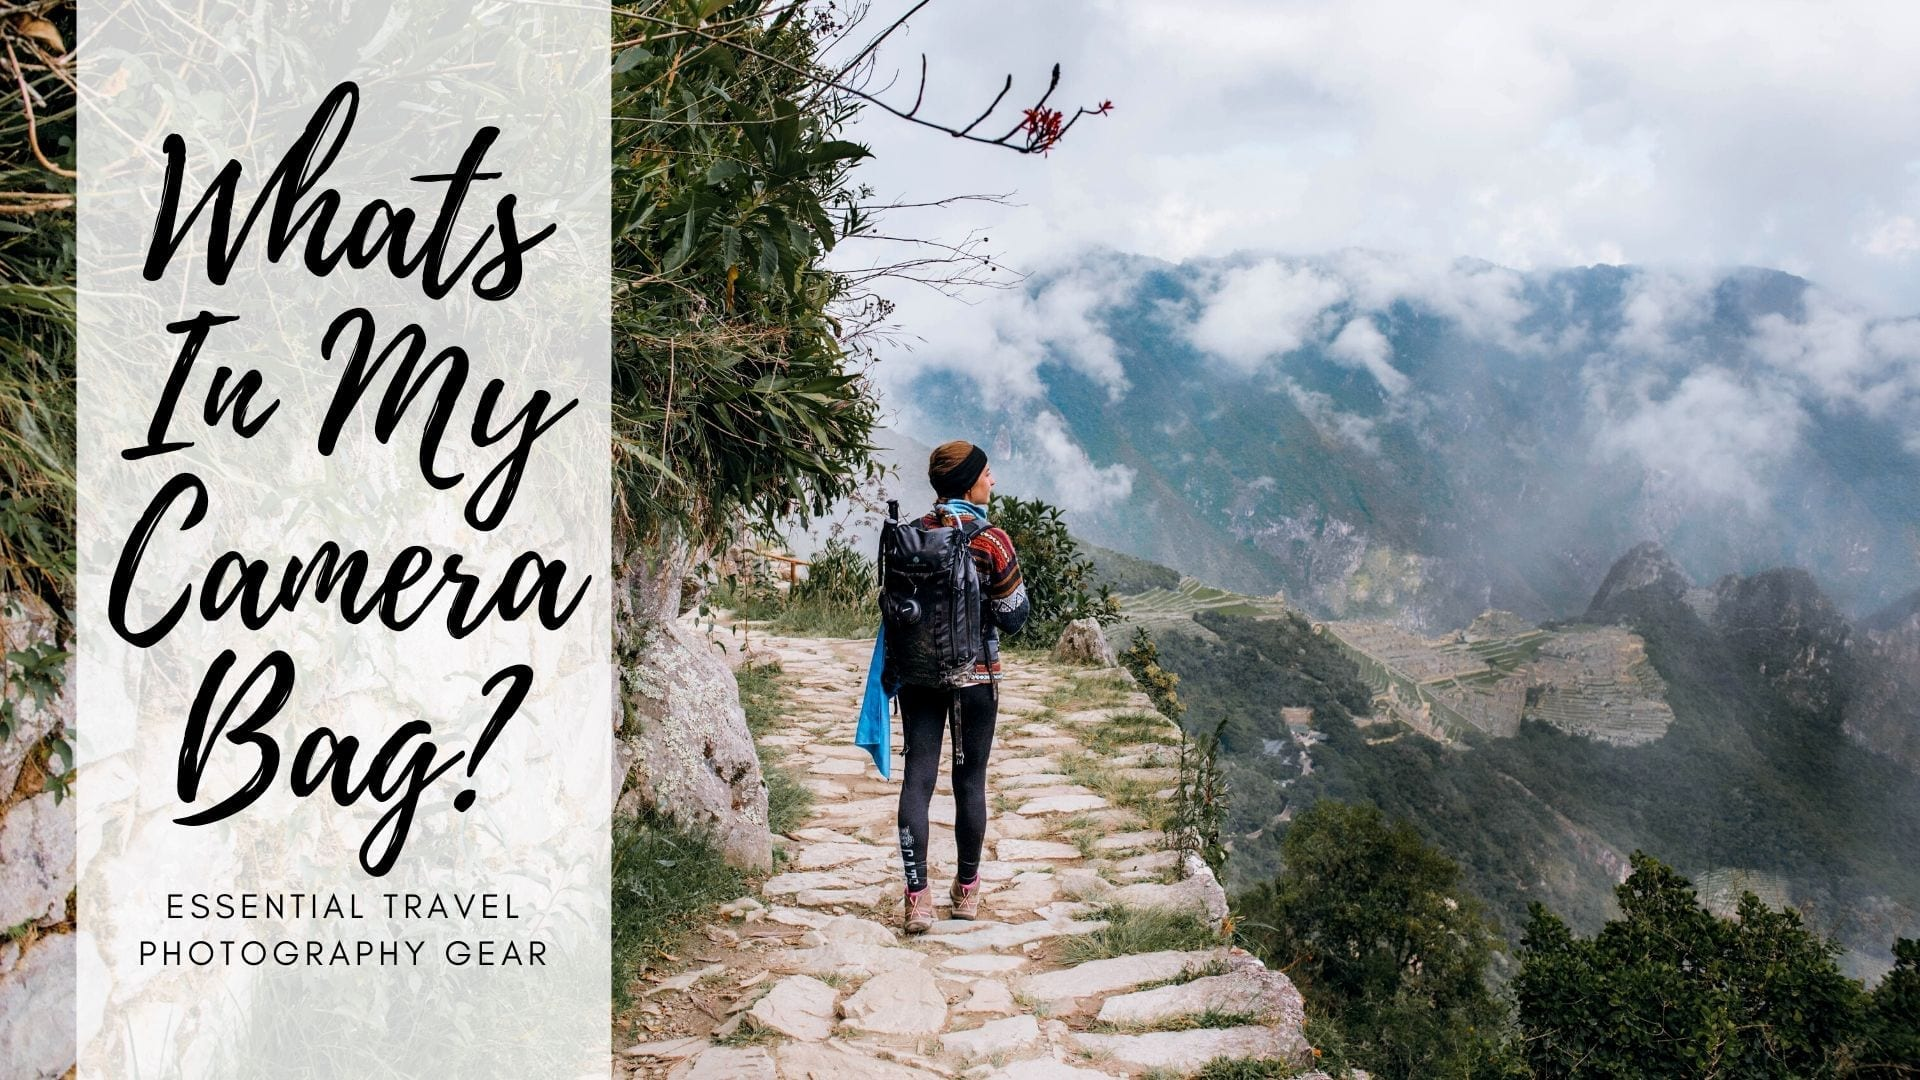 Essential Travel Photography Gear